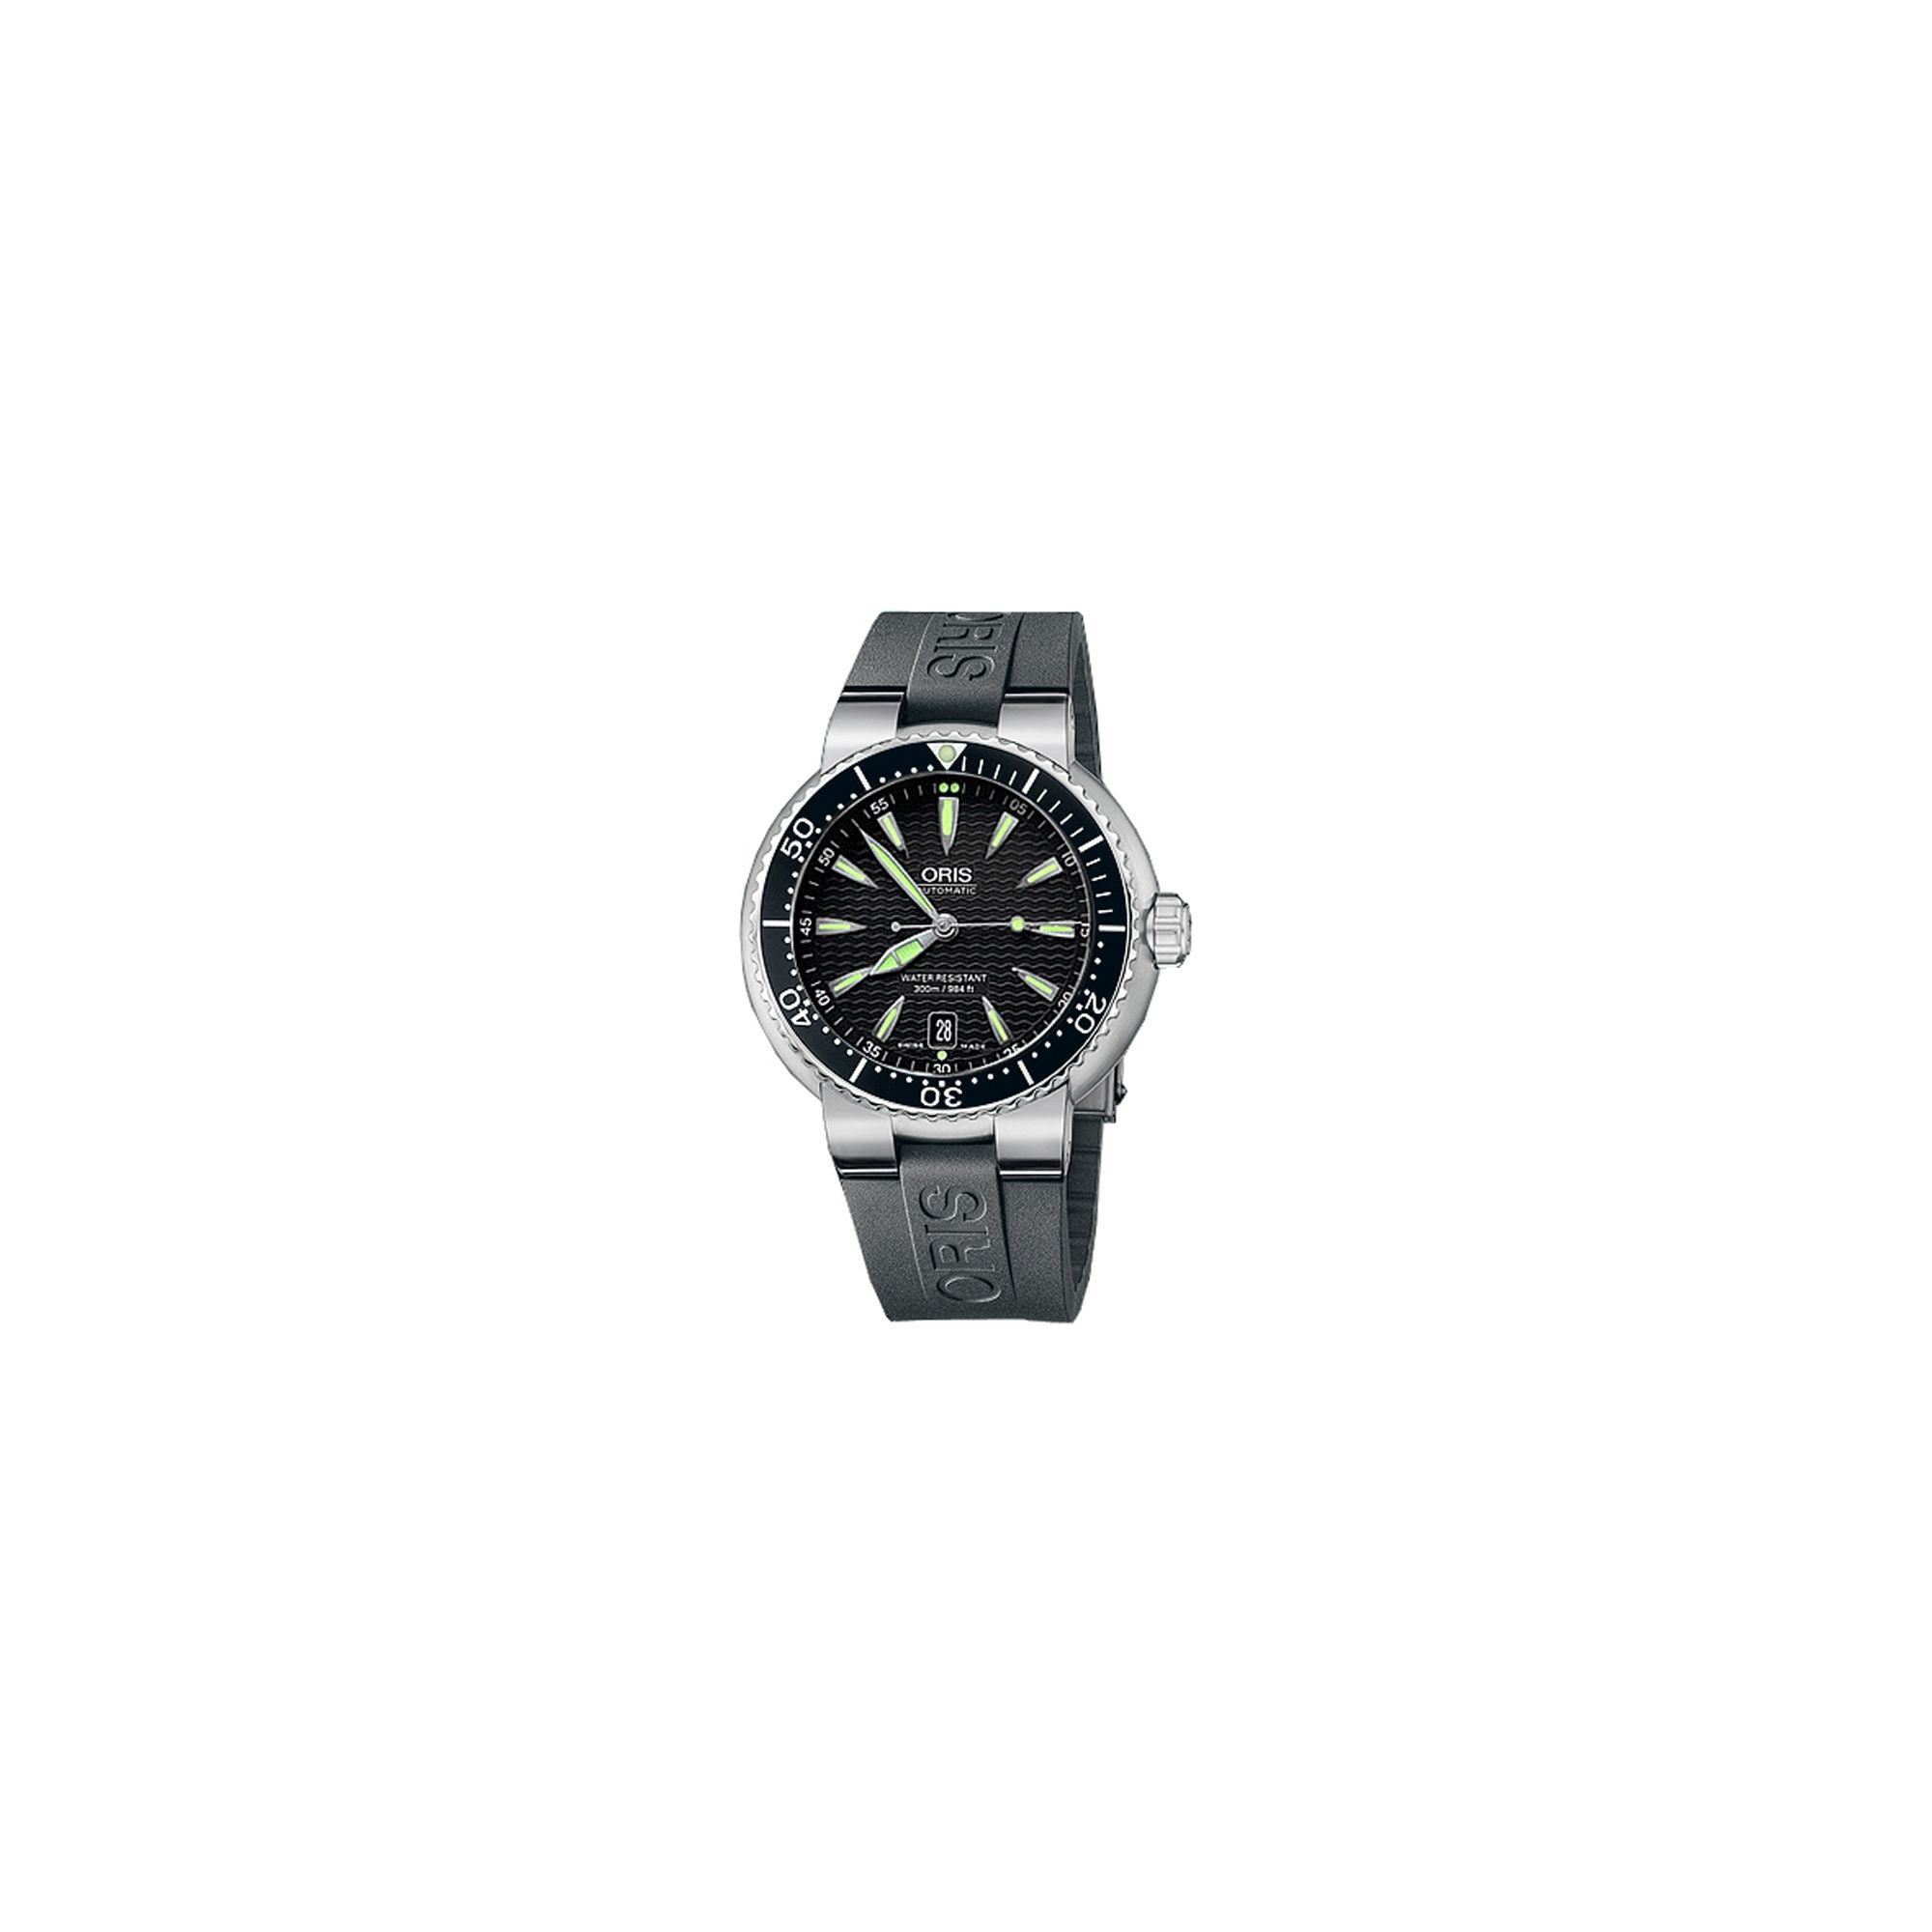 Oris Gents TT1 Black Rubber Strap Watch 73375338454RS at Tesco Direct